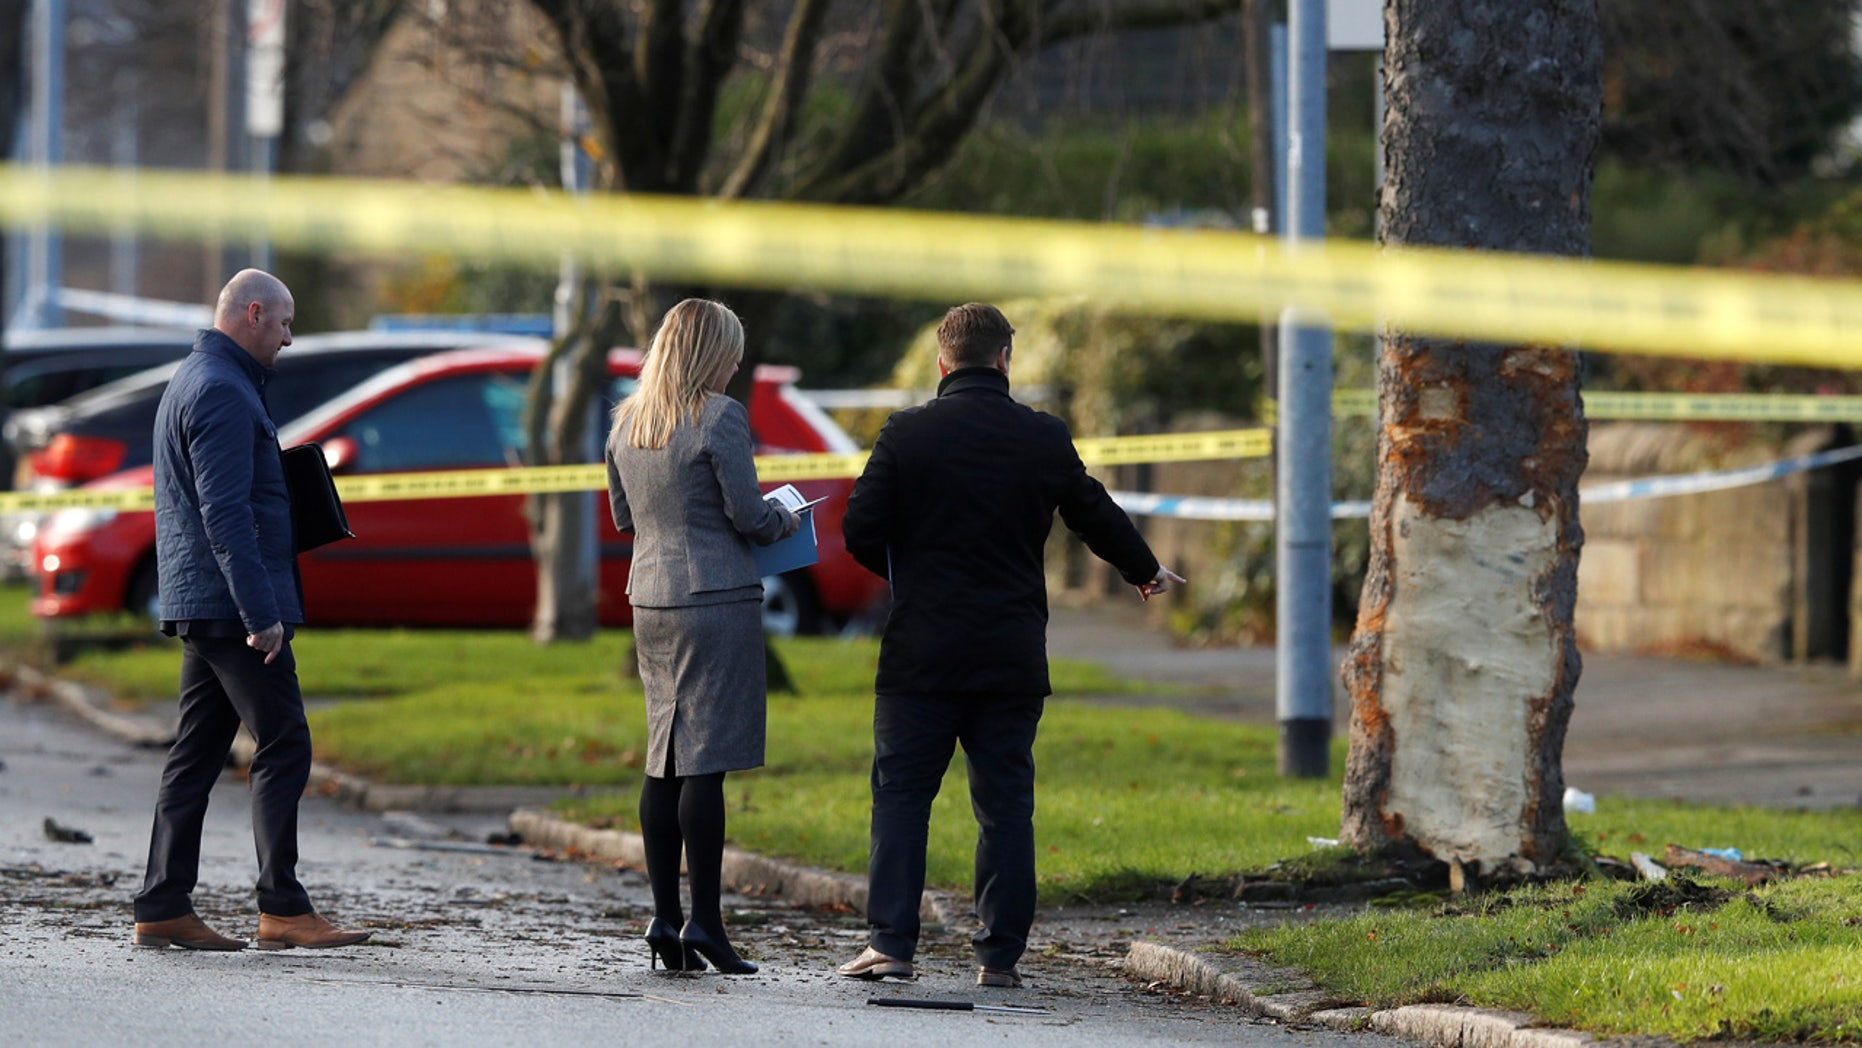 Investigators work behind police tape at the scene where a stolen car crashed into a tree, leaving 5 people dead, including 3 children, in Leeds, Britain,